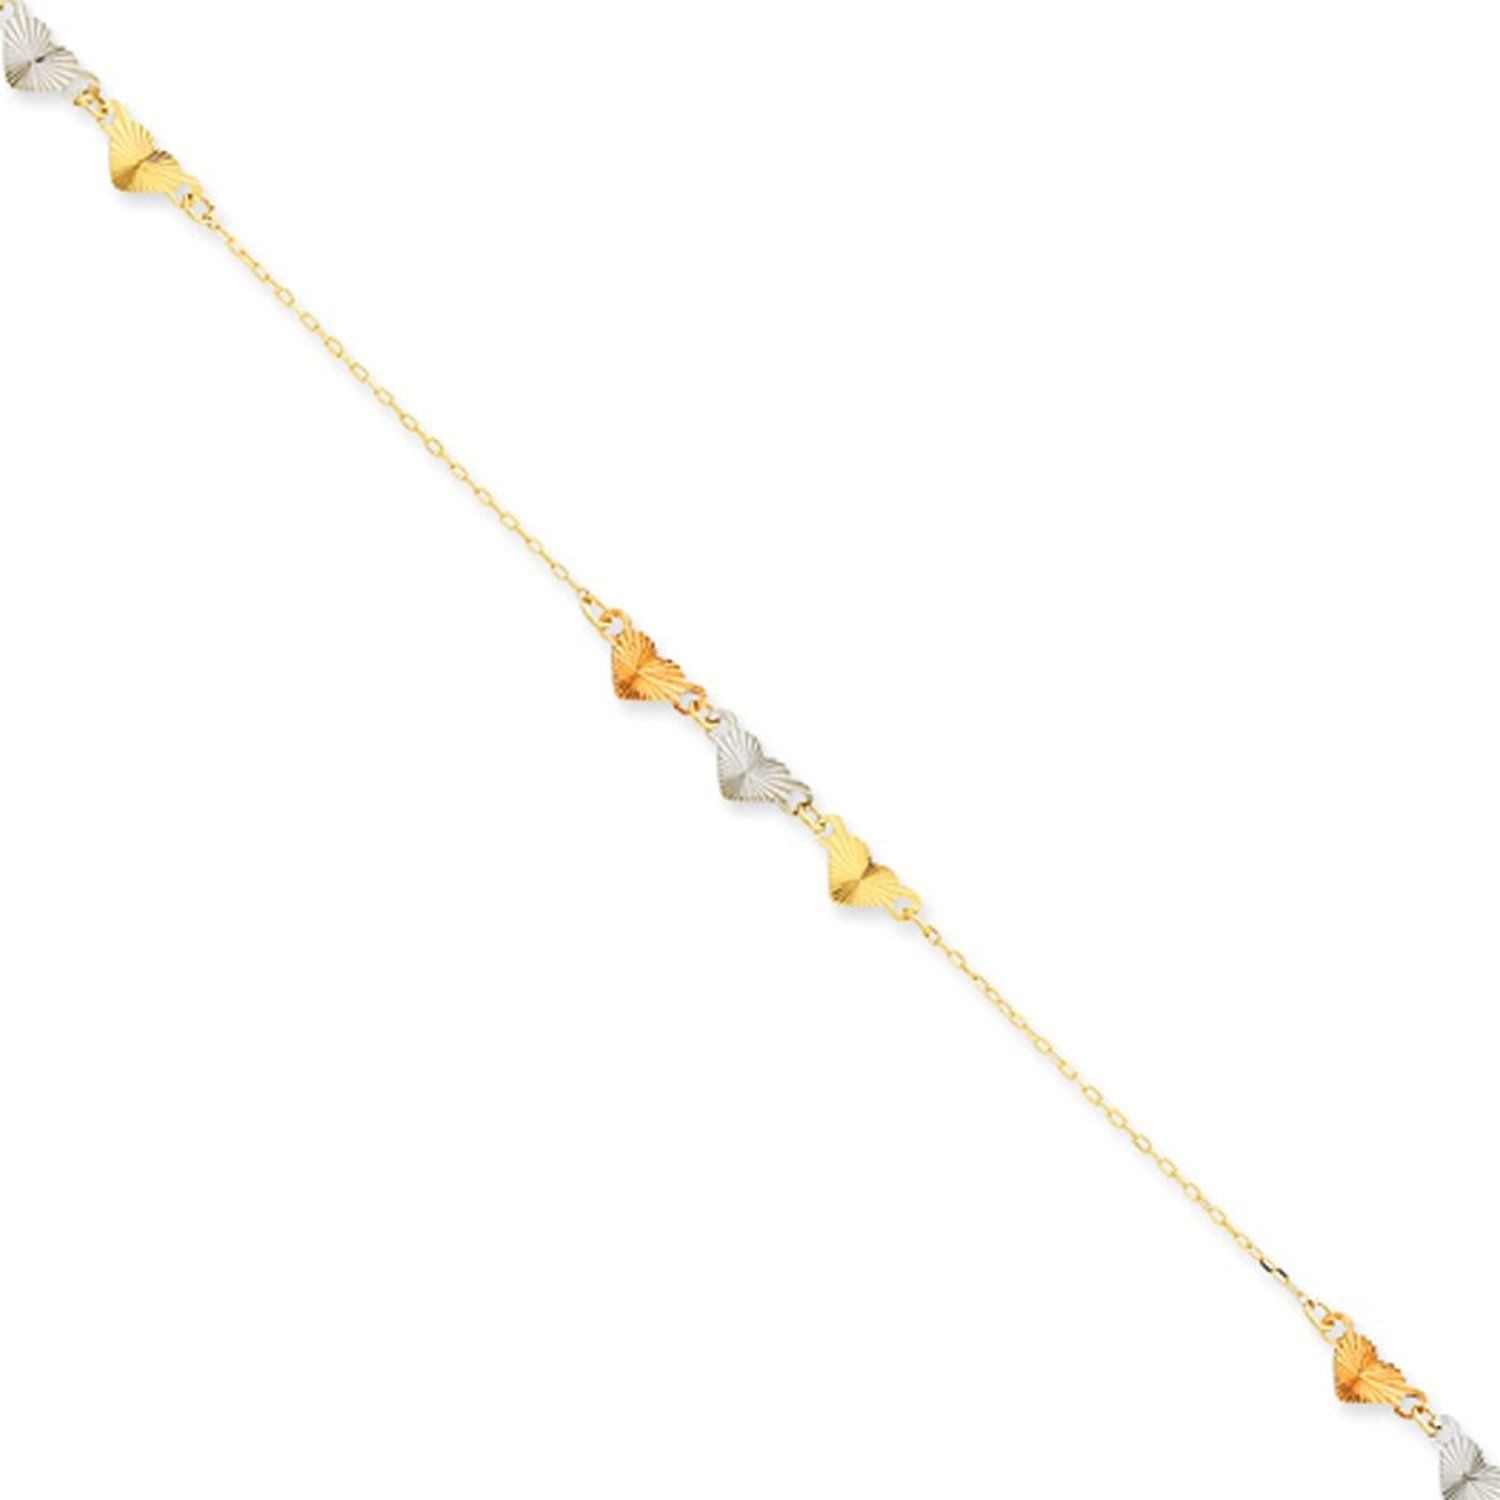 anklet ankle diamond bracelet handmade chain pin yellow solid inch rope cut gold